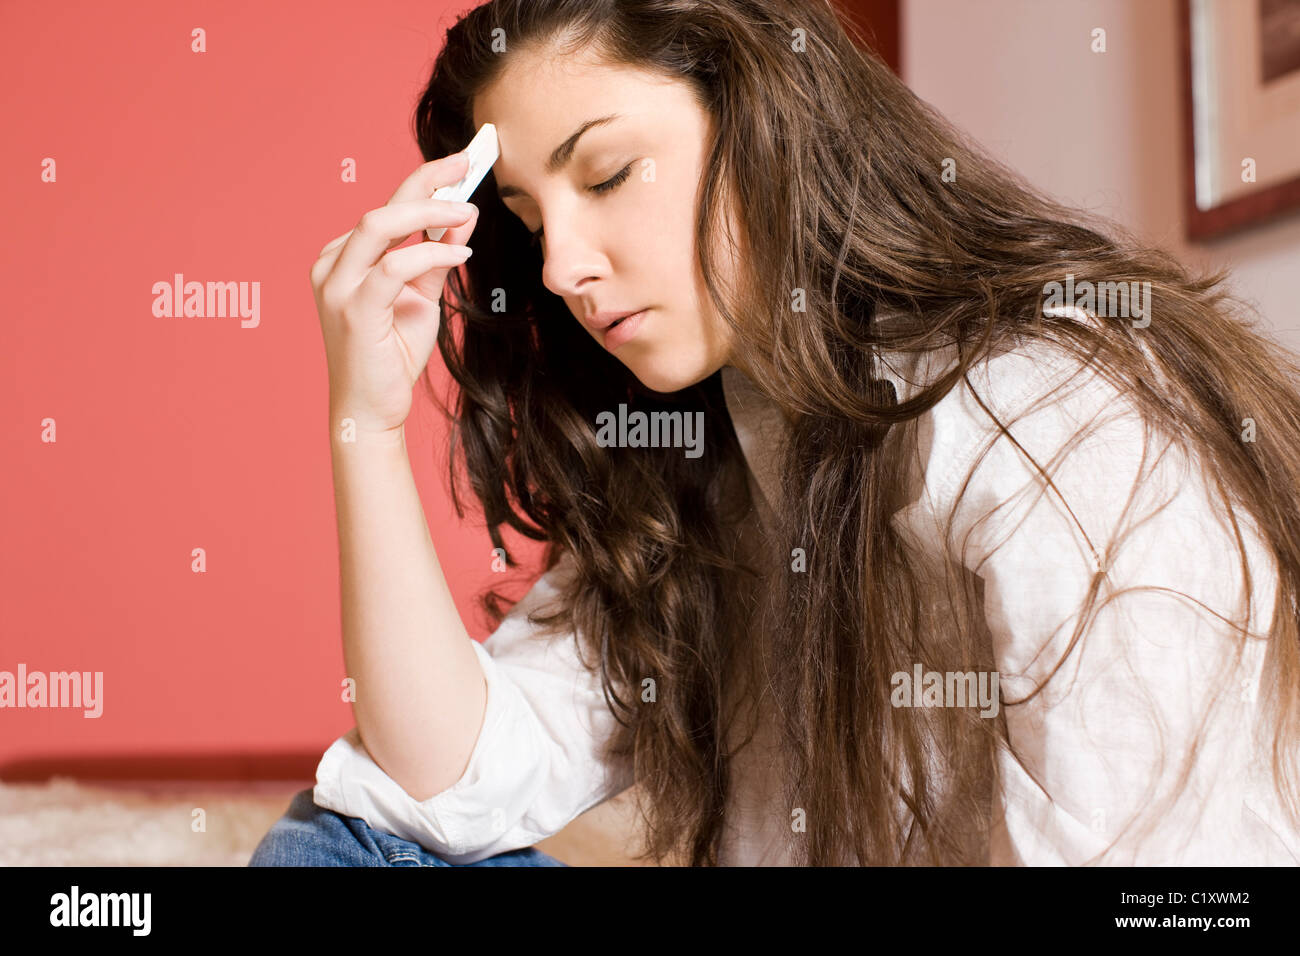 Worried woman holding pregnant test - Stock Image